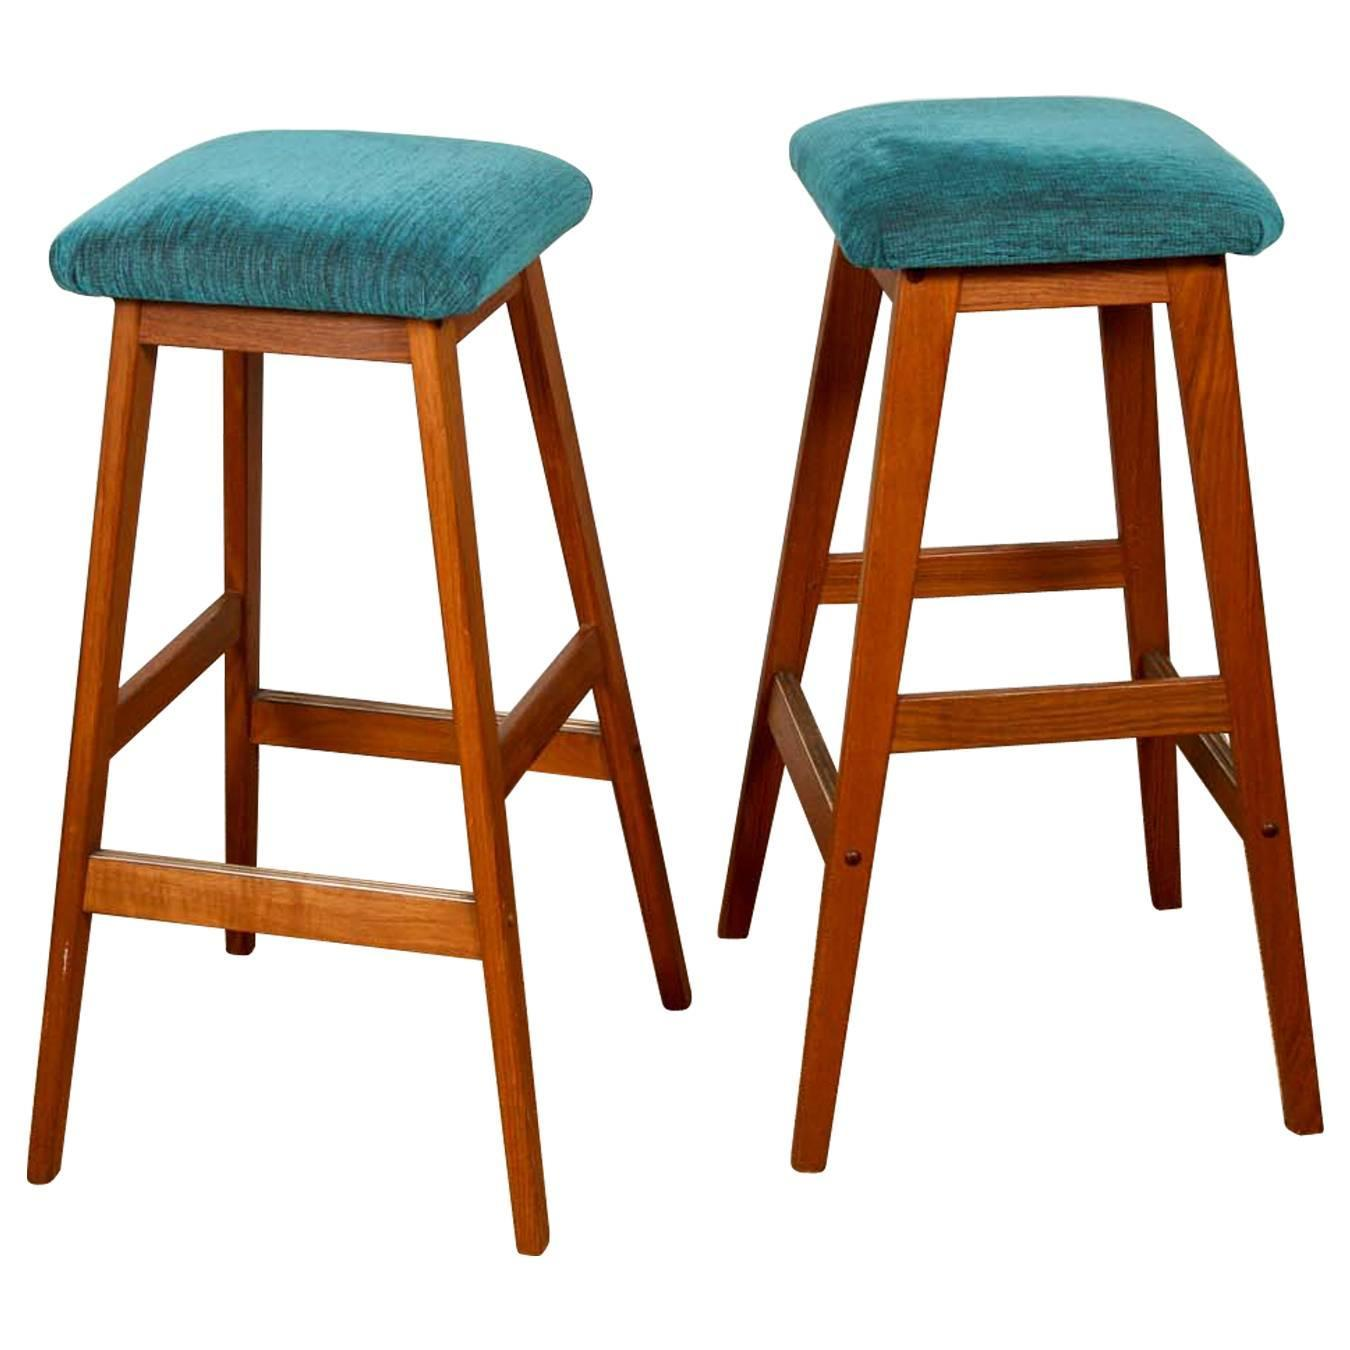 Mid Century Turquoise Bar Stools For Sale At 1stdibs